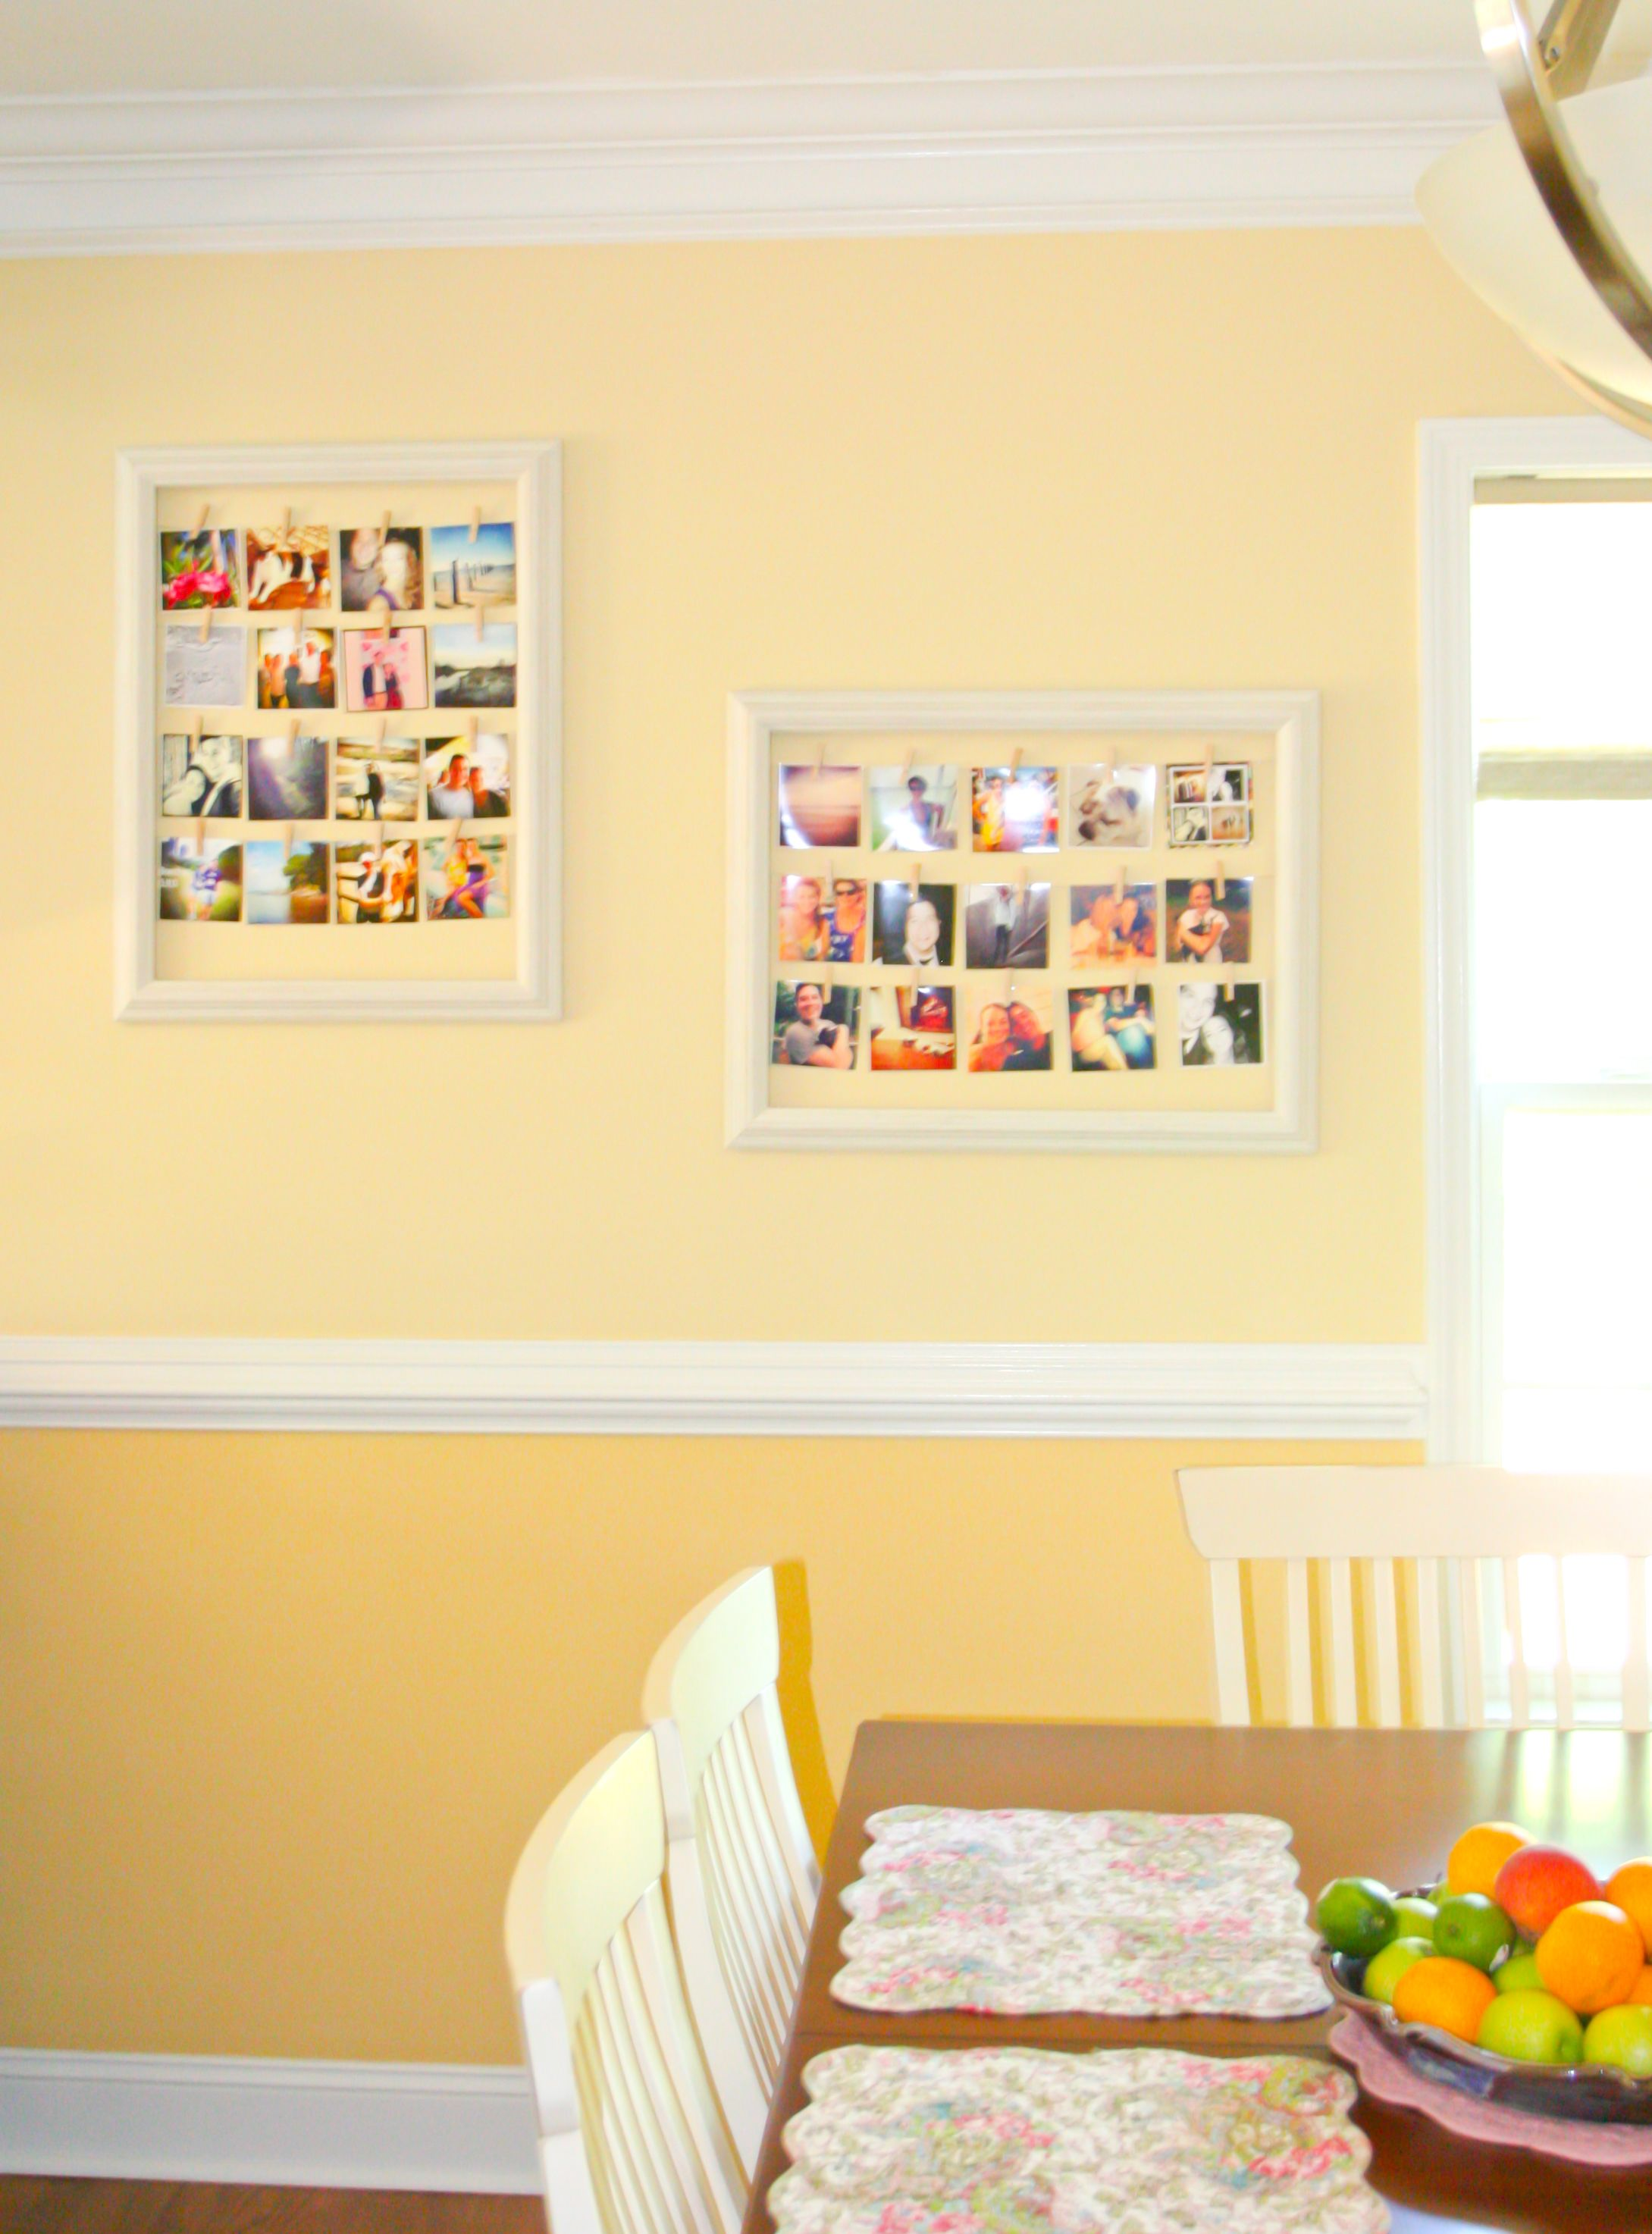 DIY: Photo Frame Collage Project | Diy | Pinterest | Photo frame ...